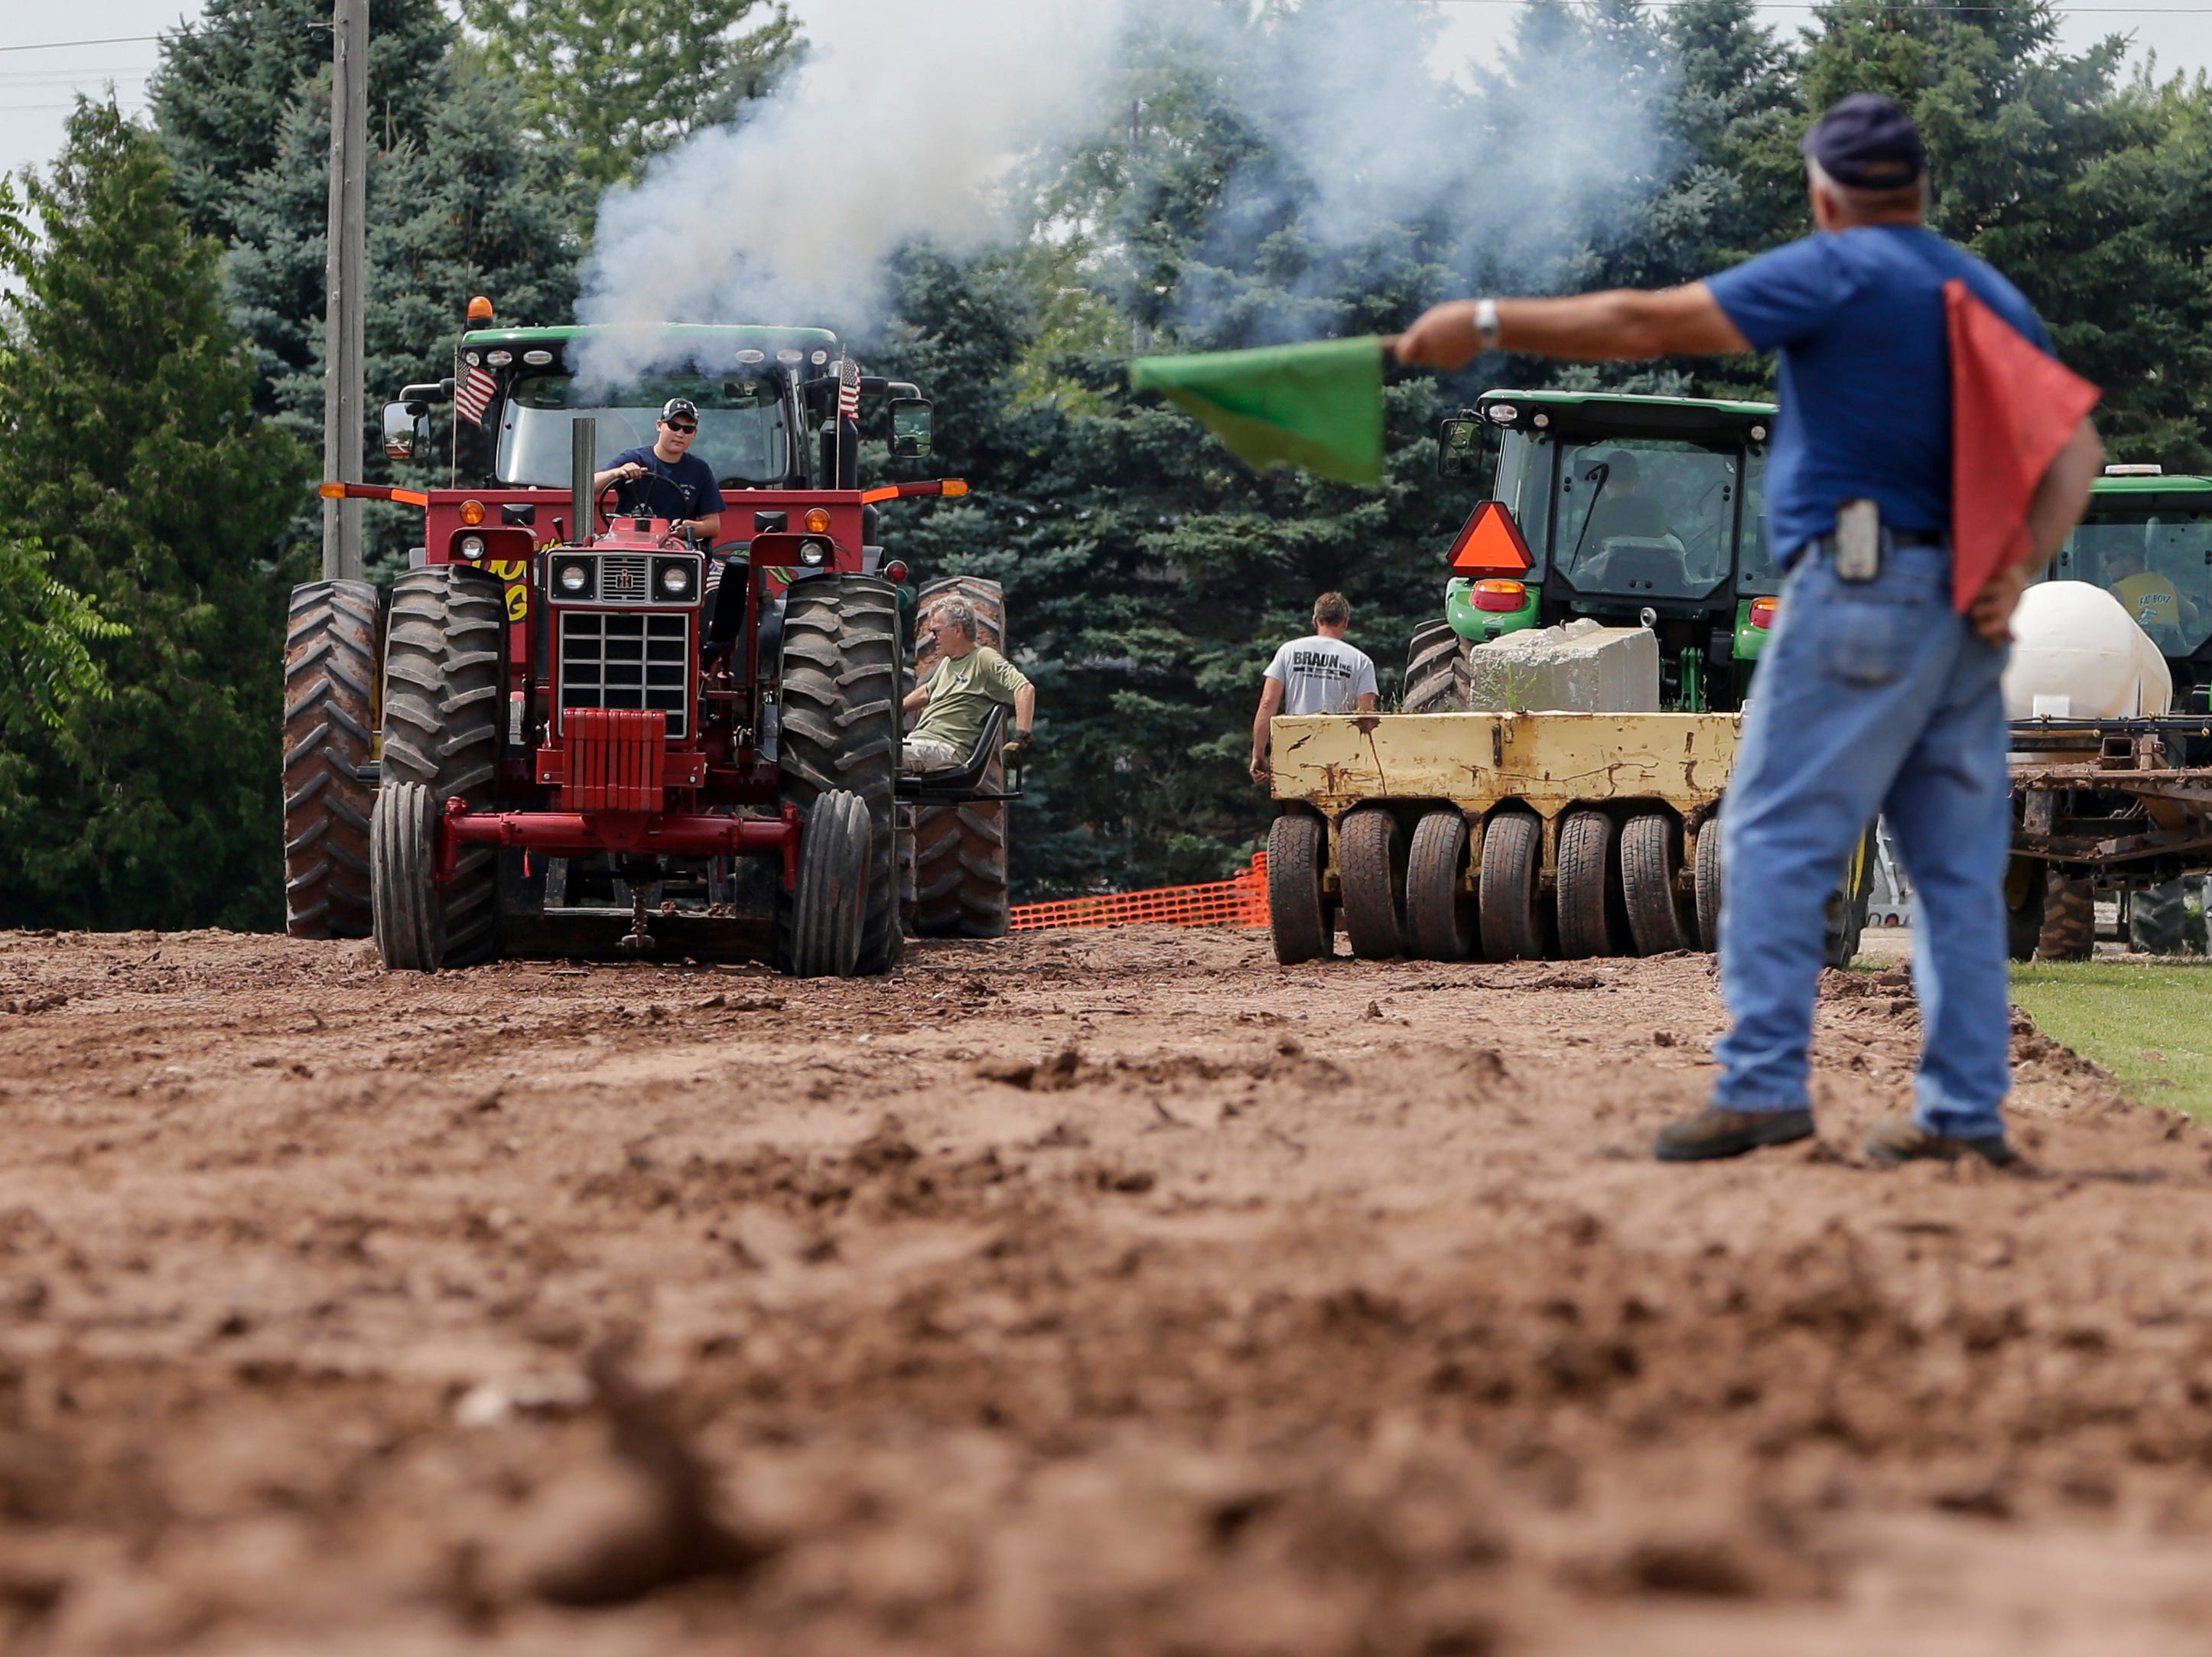 Kaeden Fisher of Newton starts his pull on his International Harvester during the tractor pull at Mishicot Riverfest Saturday, August 4, 2018, in Mishicot, Wis. Josh Clark/USA TODAY NETWORK-Wisconsin